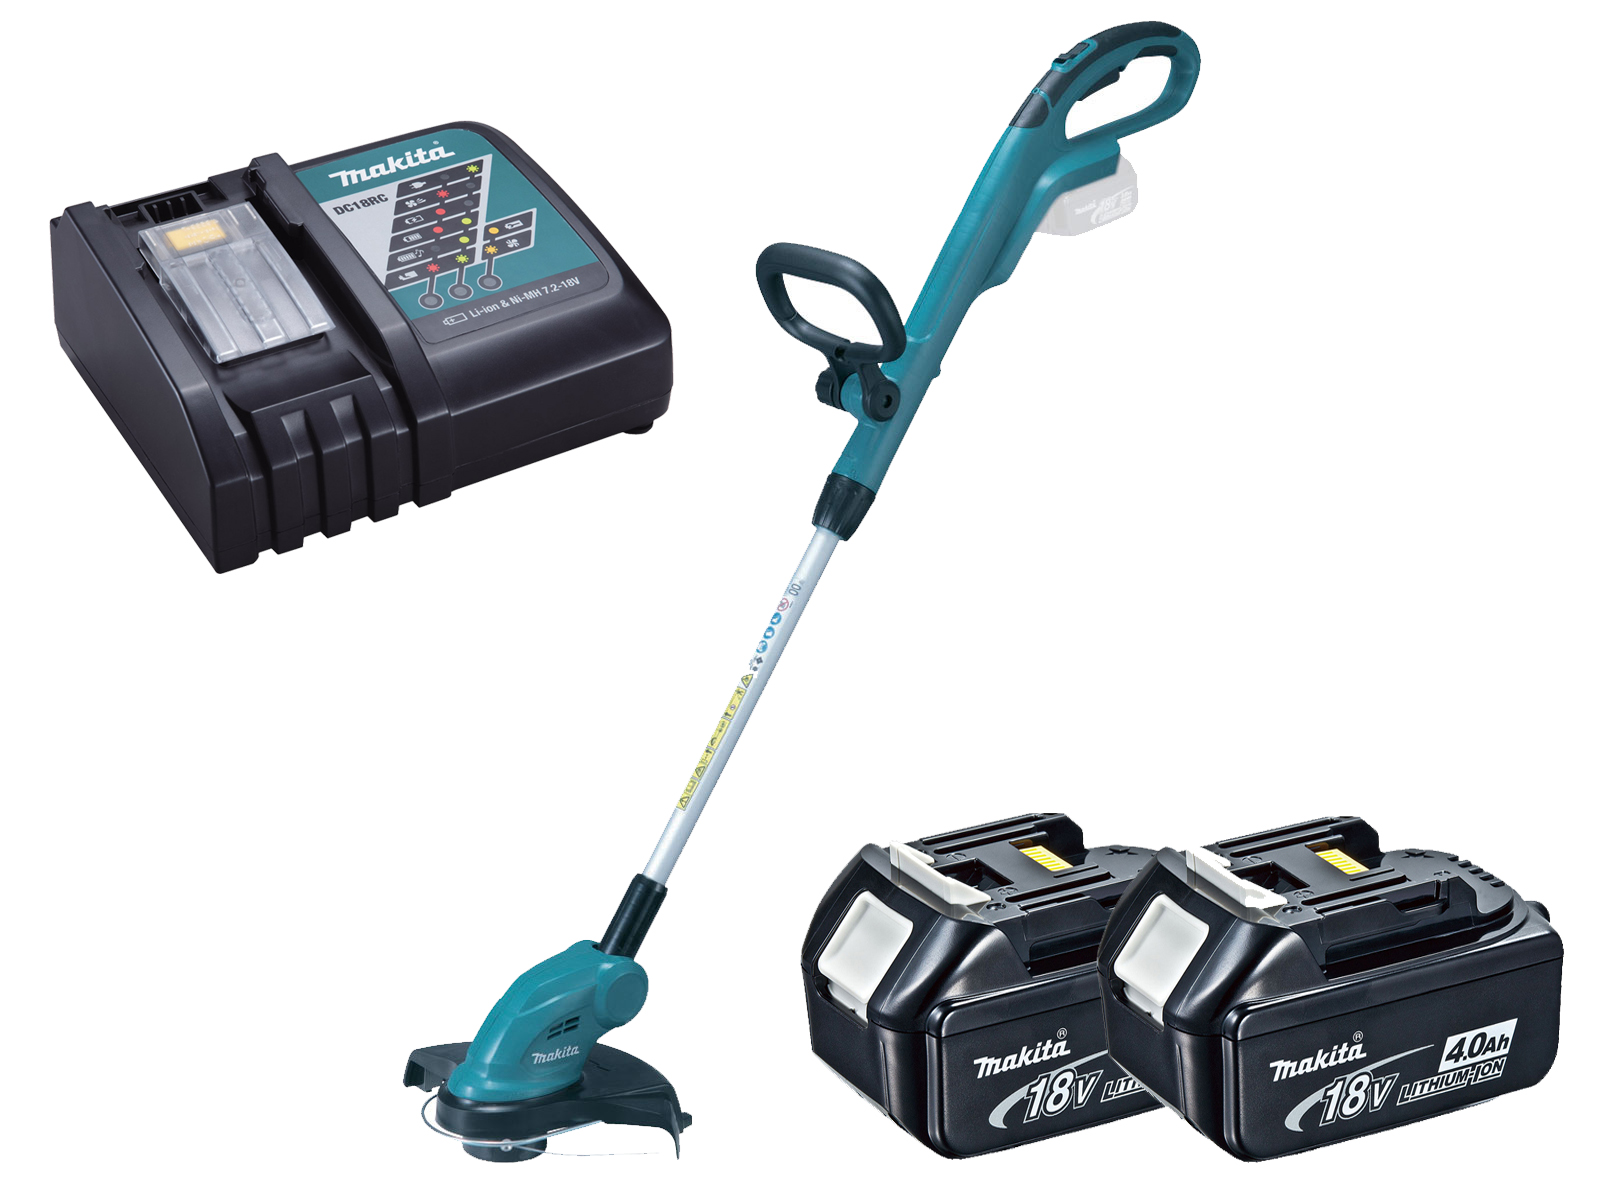 Makita 18V Brushed LXT Line Trimmer - DUR181Z - 4.0Ah Pack